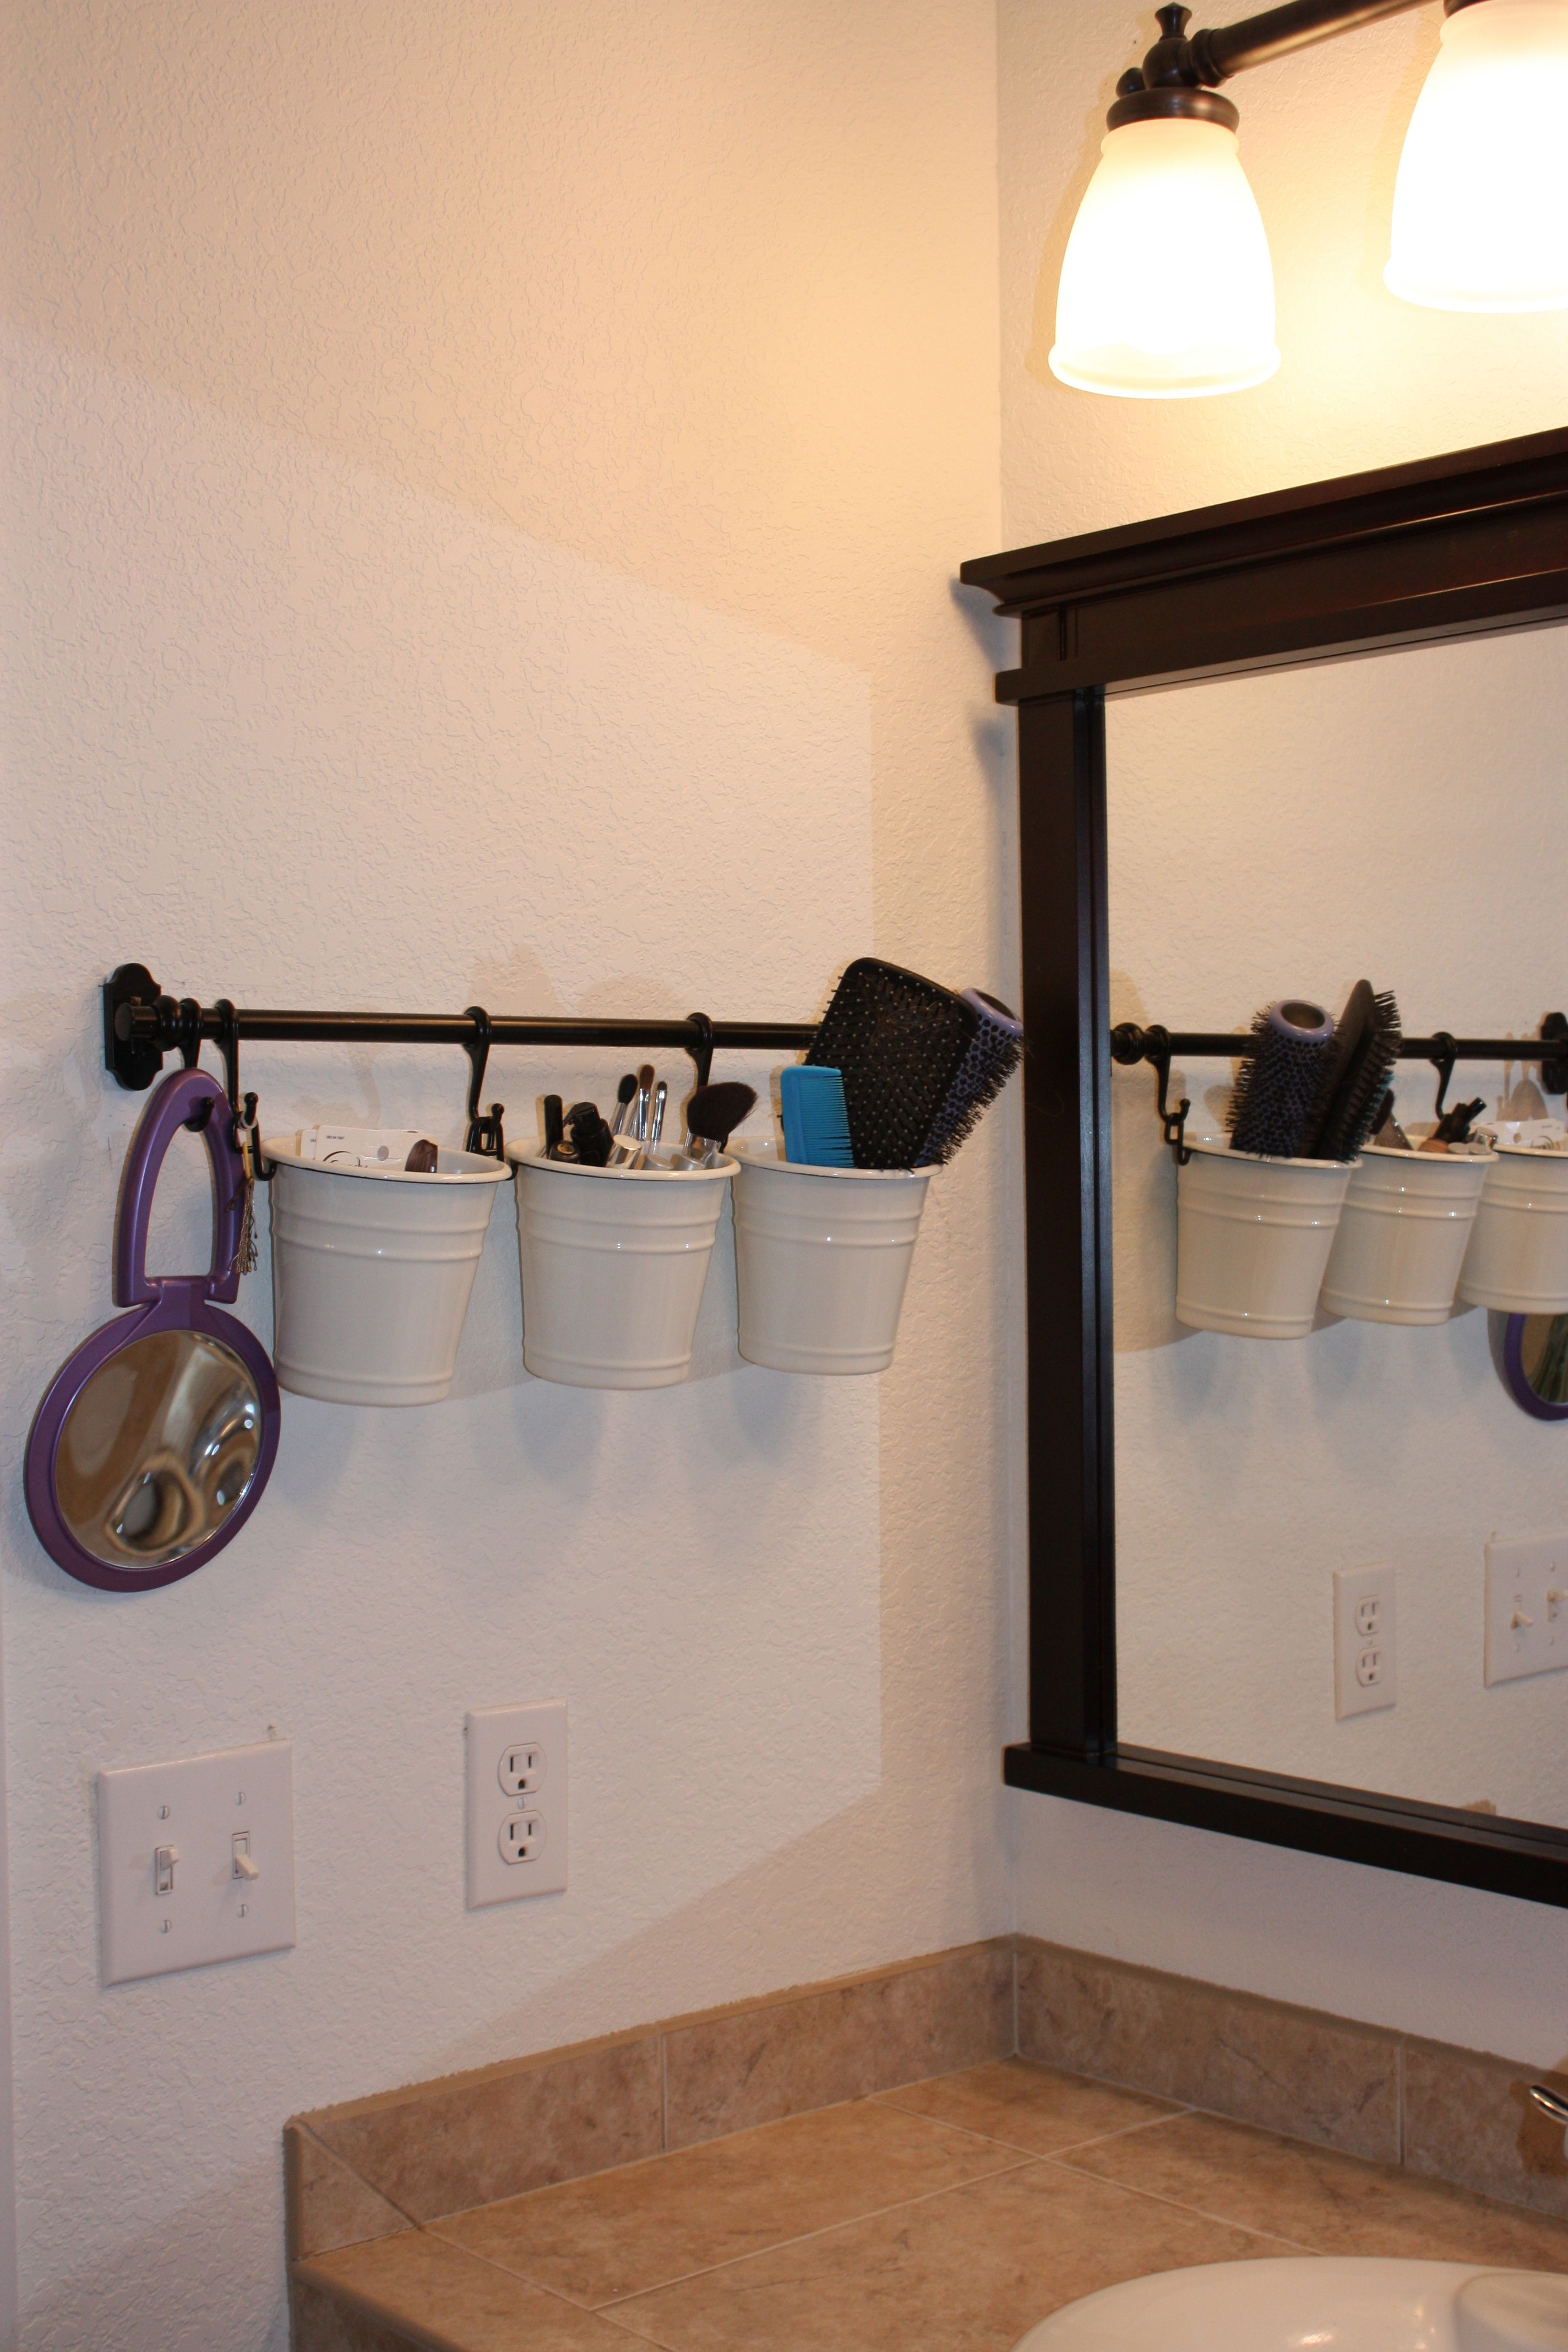 Painted Thrift Store Shower Curtain Hooks Bathroom Organisation Home Diy Home